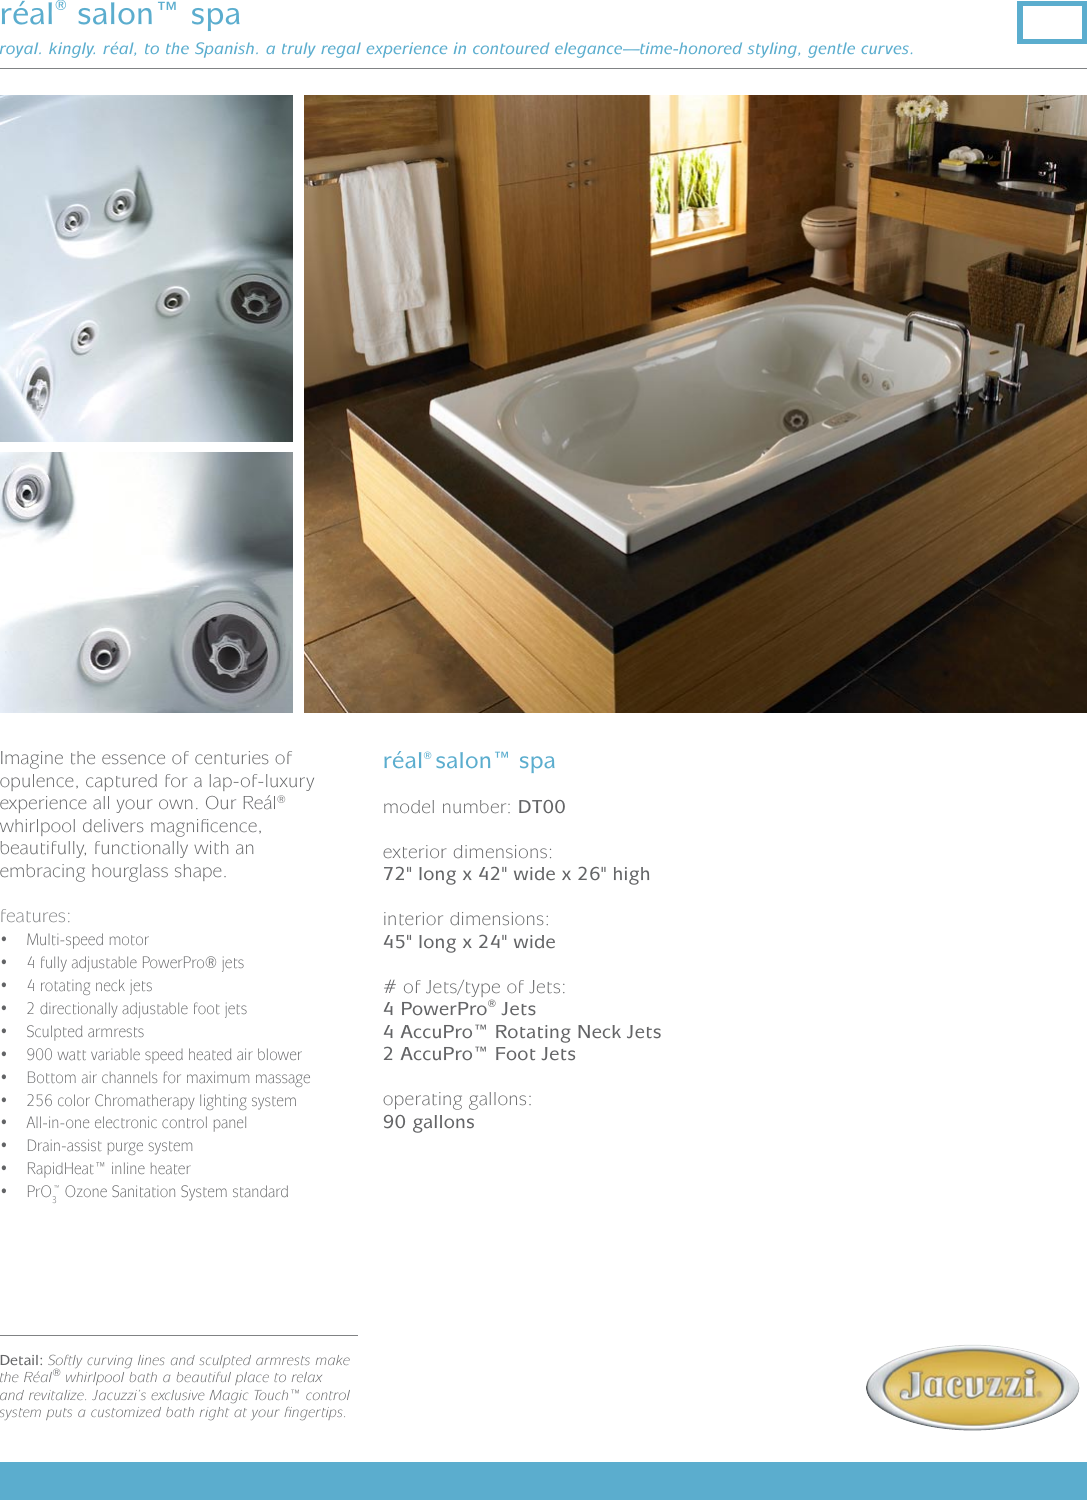 Jacuzzi DT00 User Manual To The 83480cef ef14 4dd1 a43f